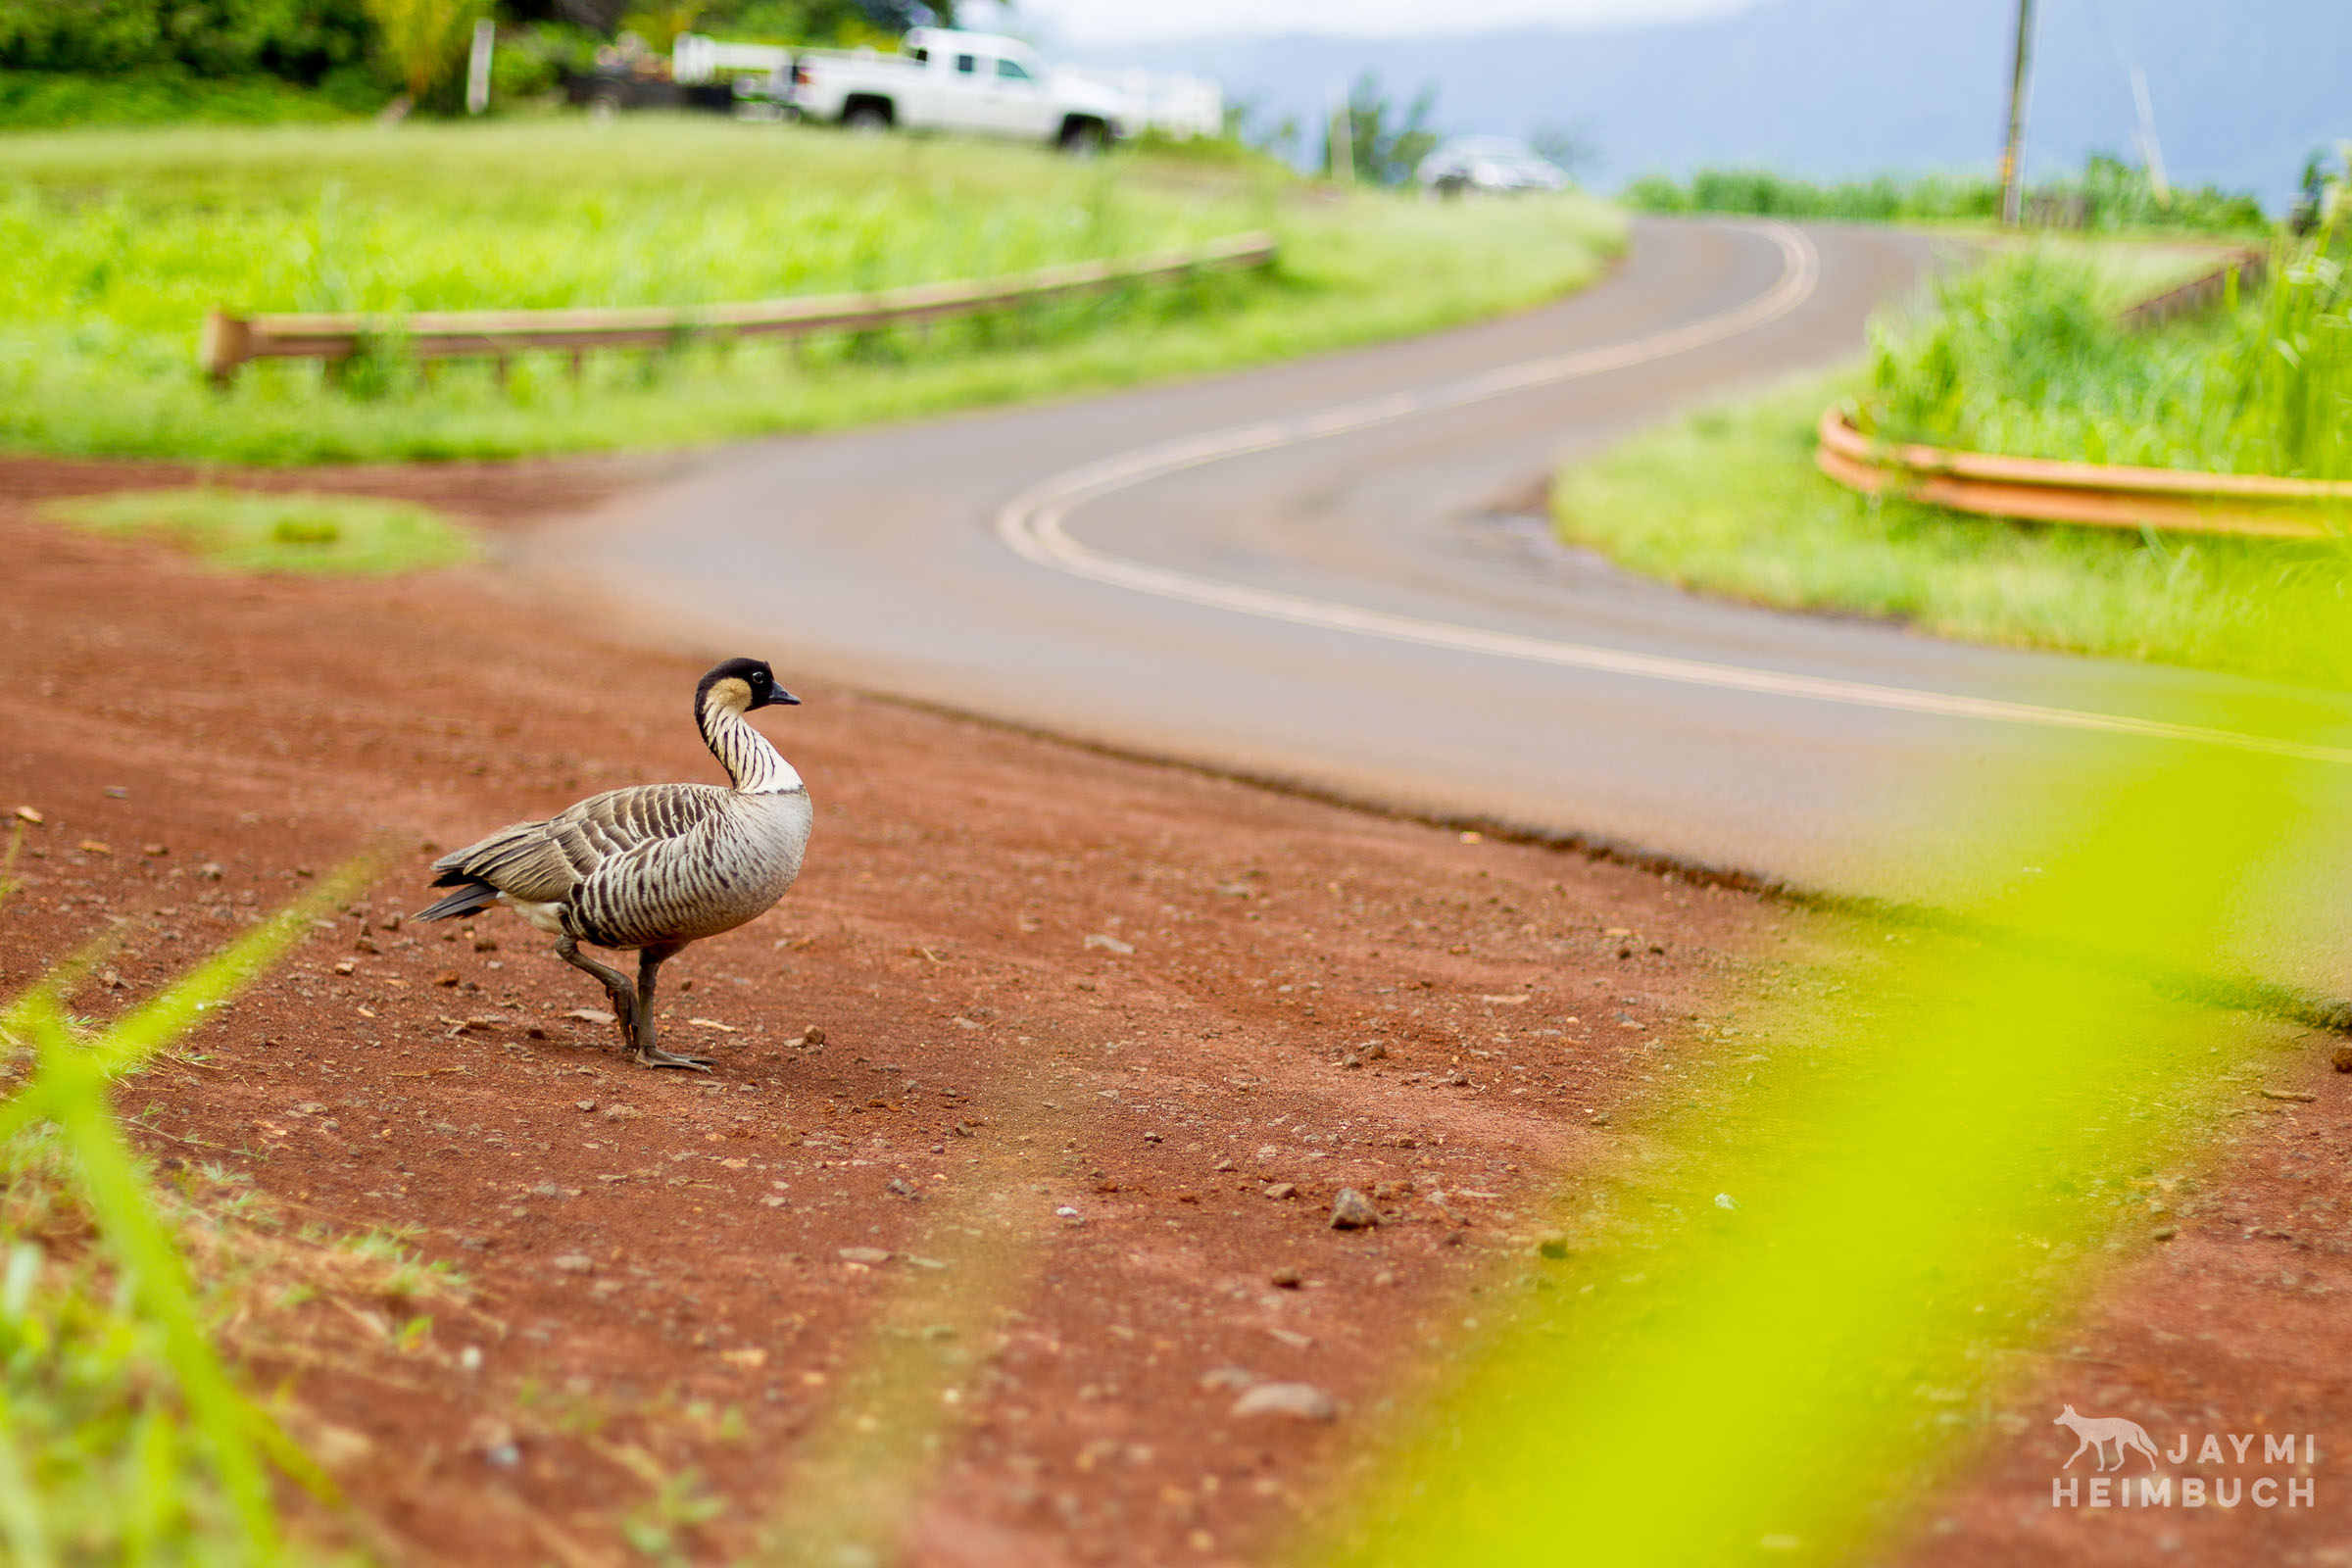 Nene goose next to a road, kauai